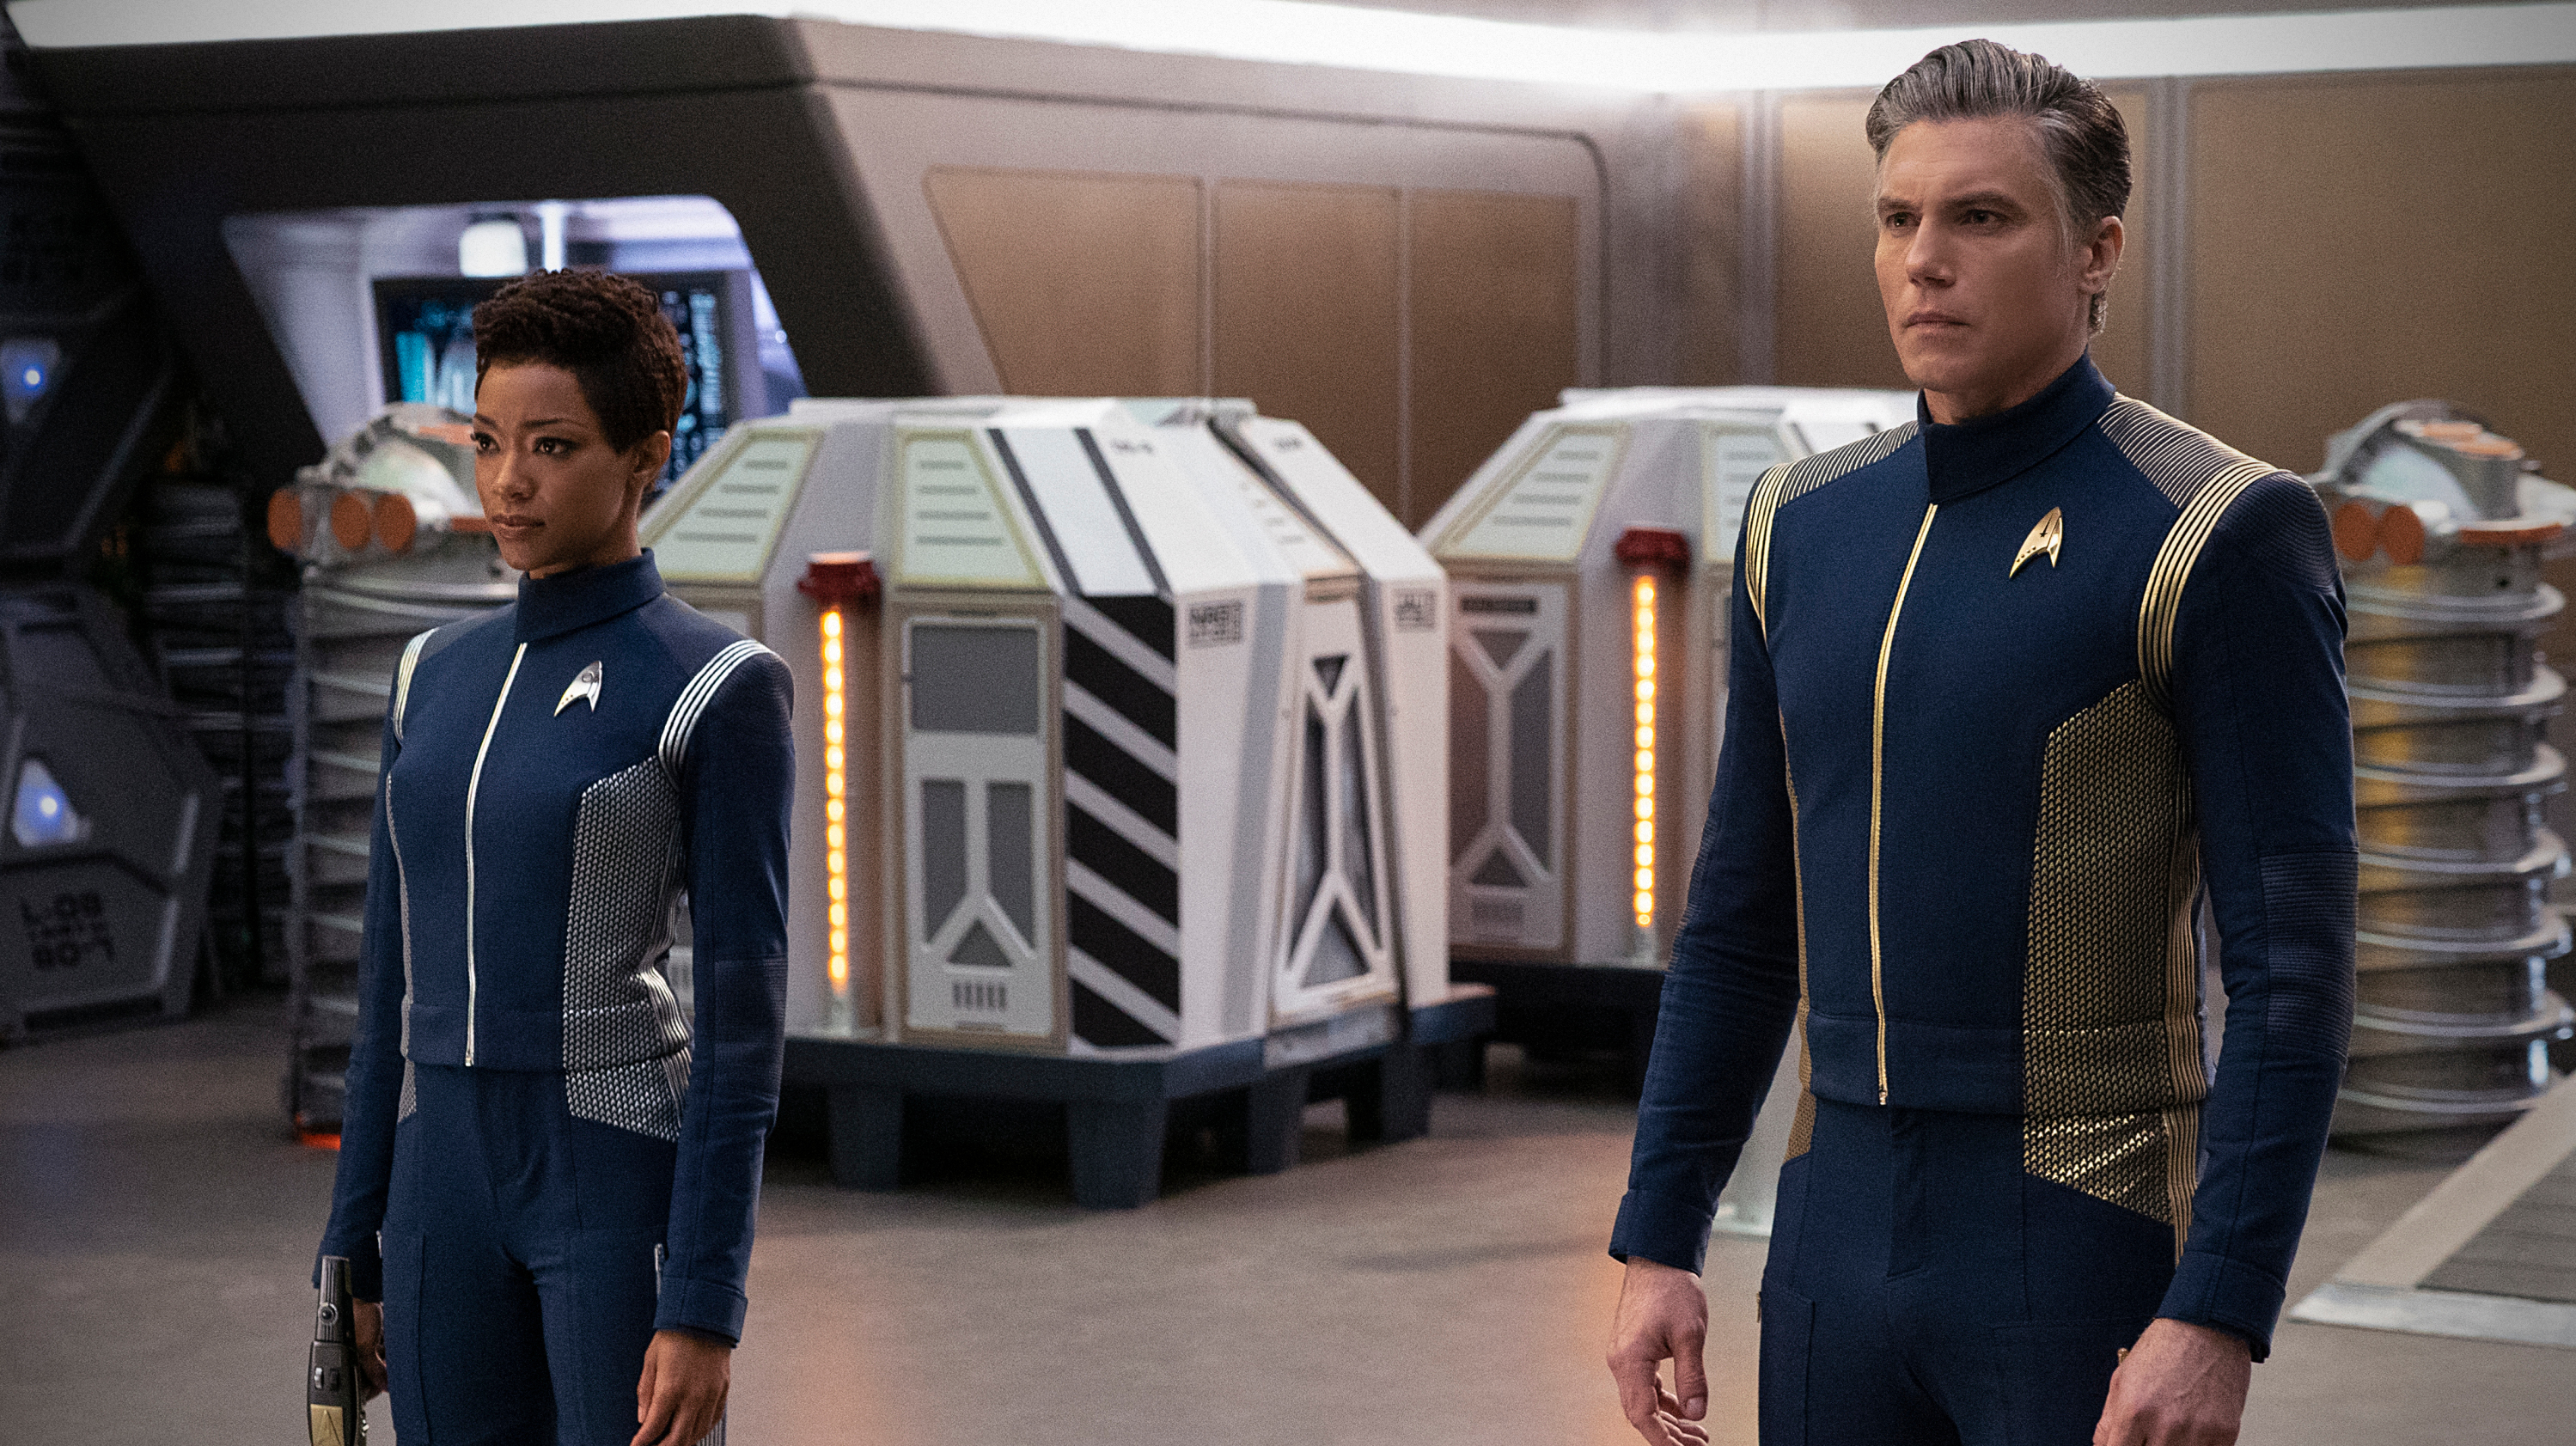 Star Trek: Discovery's Stars Reveal More About Last Night's Big Surprise